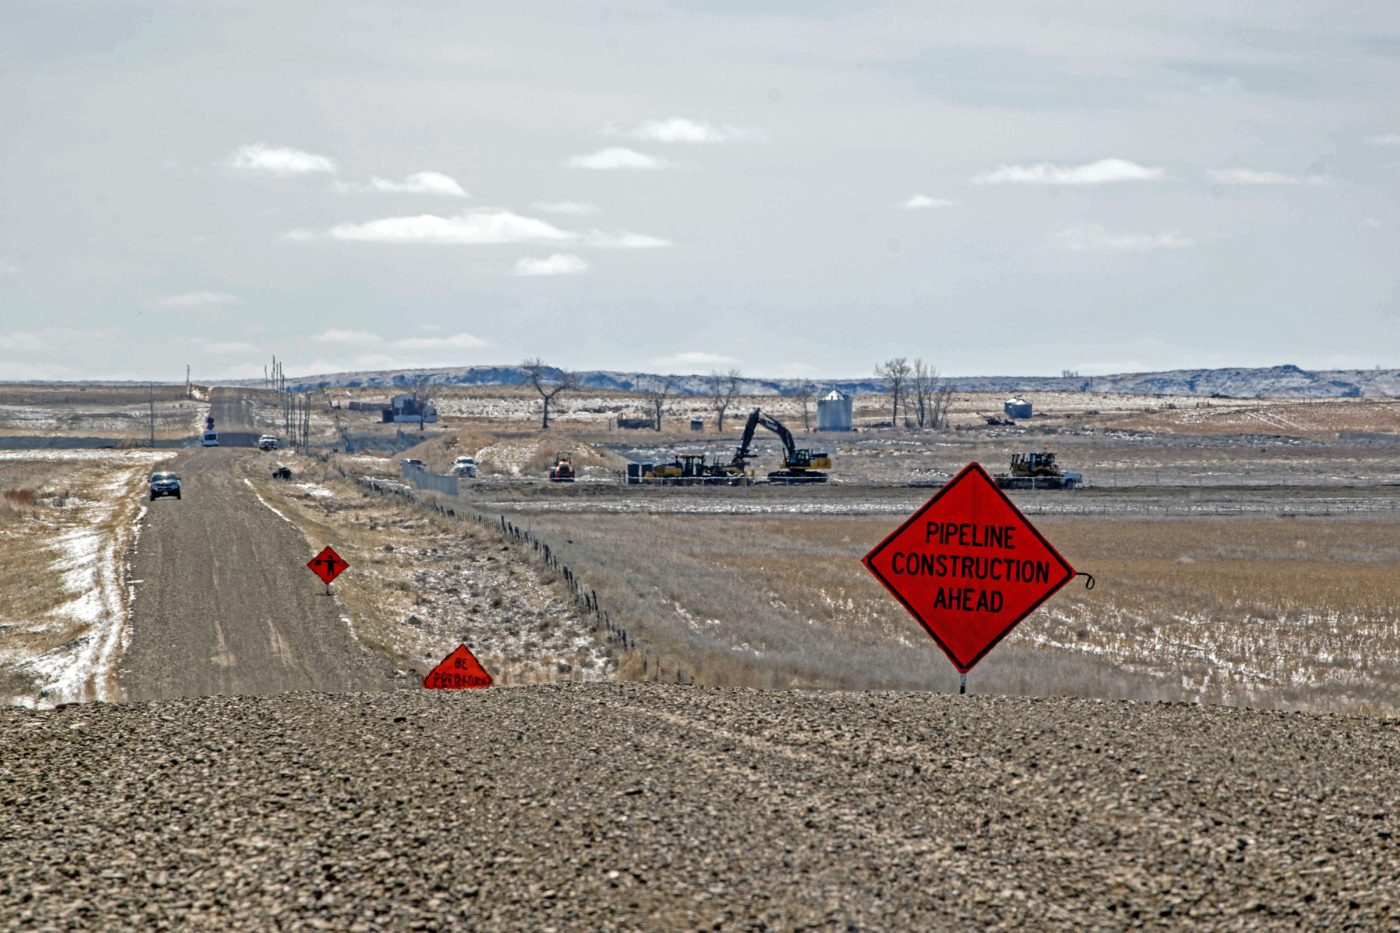 Governor OKs Keystone XL construction despite coronavirus threat